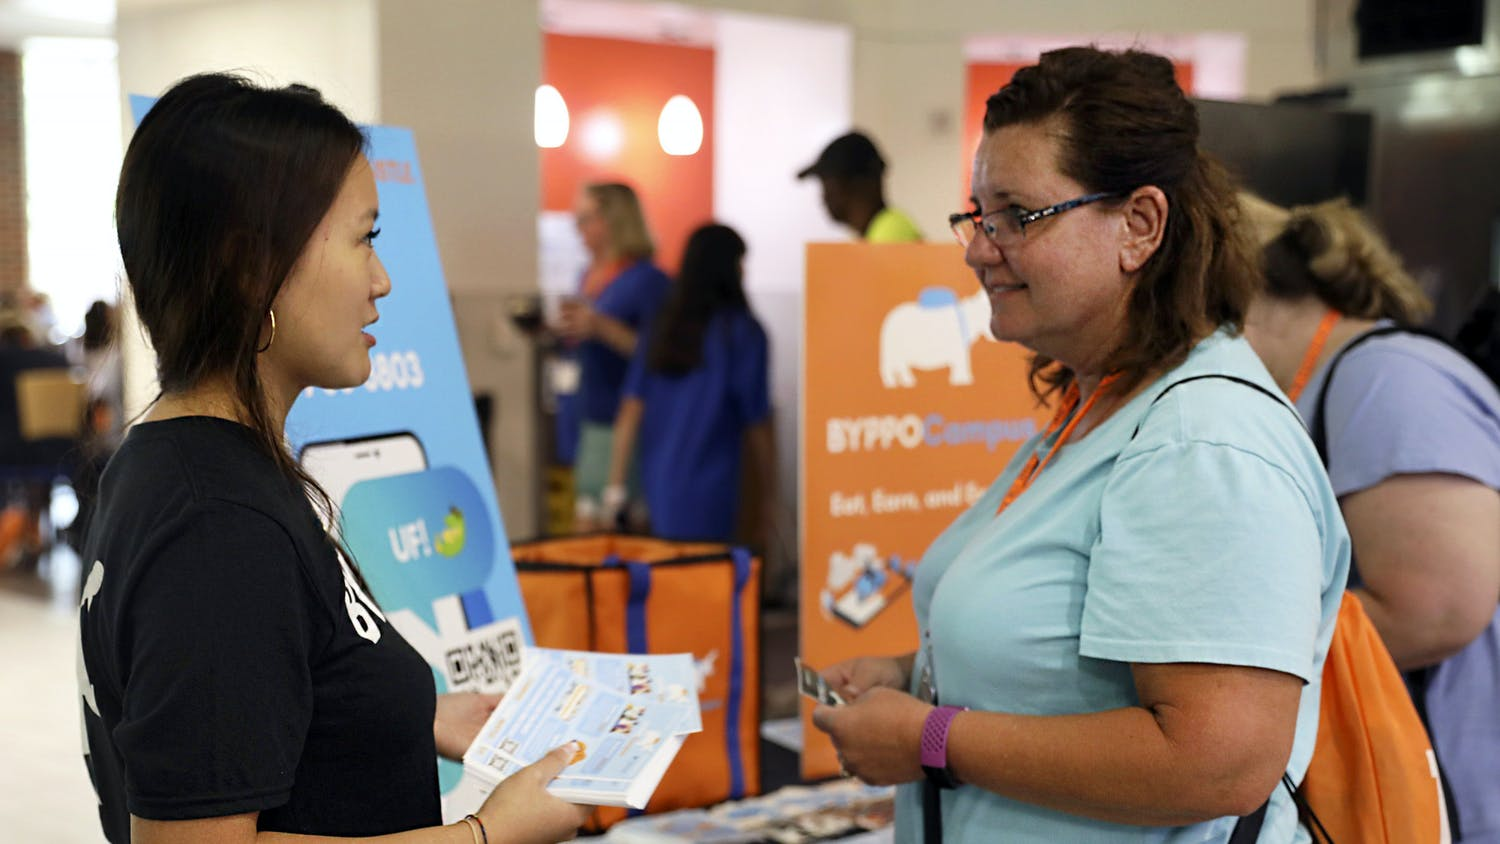 BYPPOCAMPUS founder and CEO Victoria Liu, (left) a UF accounting alumna, introduces her food delivery business to Stephanie Landini, (right) a parent of a UF student, at Gator Dining Center in Gainesville on Friday, July 9, 2021.